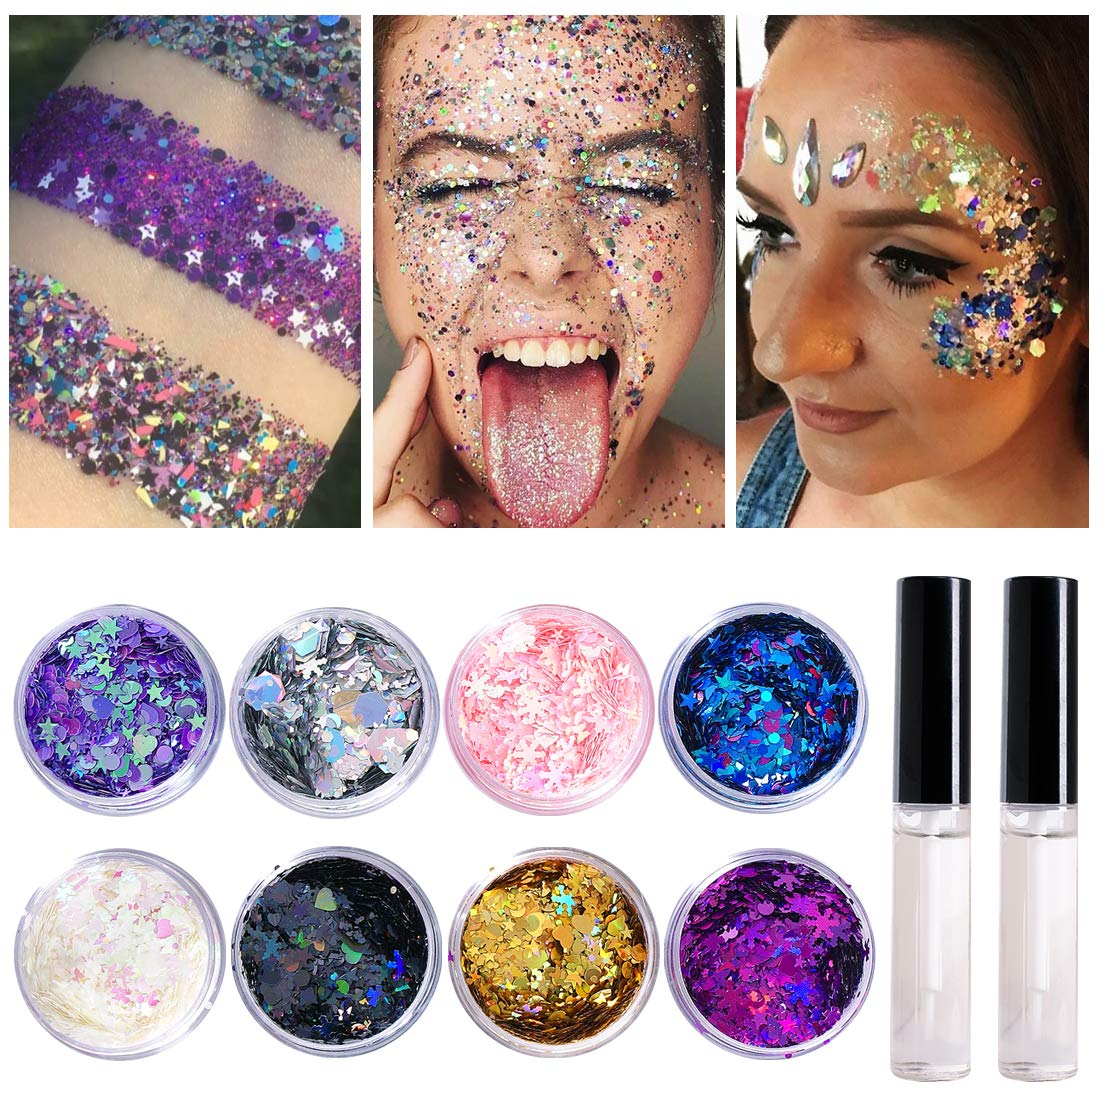 Beauty & Health 1 Bottle Mermaid Sequins Gel Glitter Eyeshadow Makeup Cosmetic Mixed Paillette For Face Body Hair Nshopping